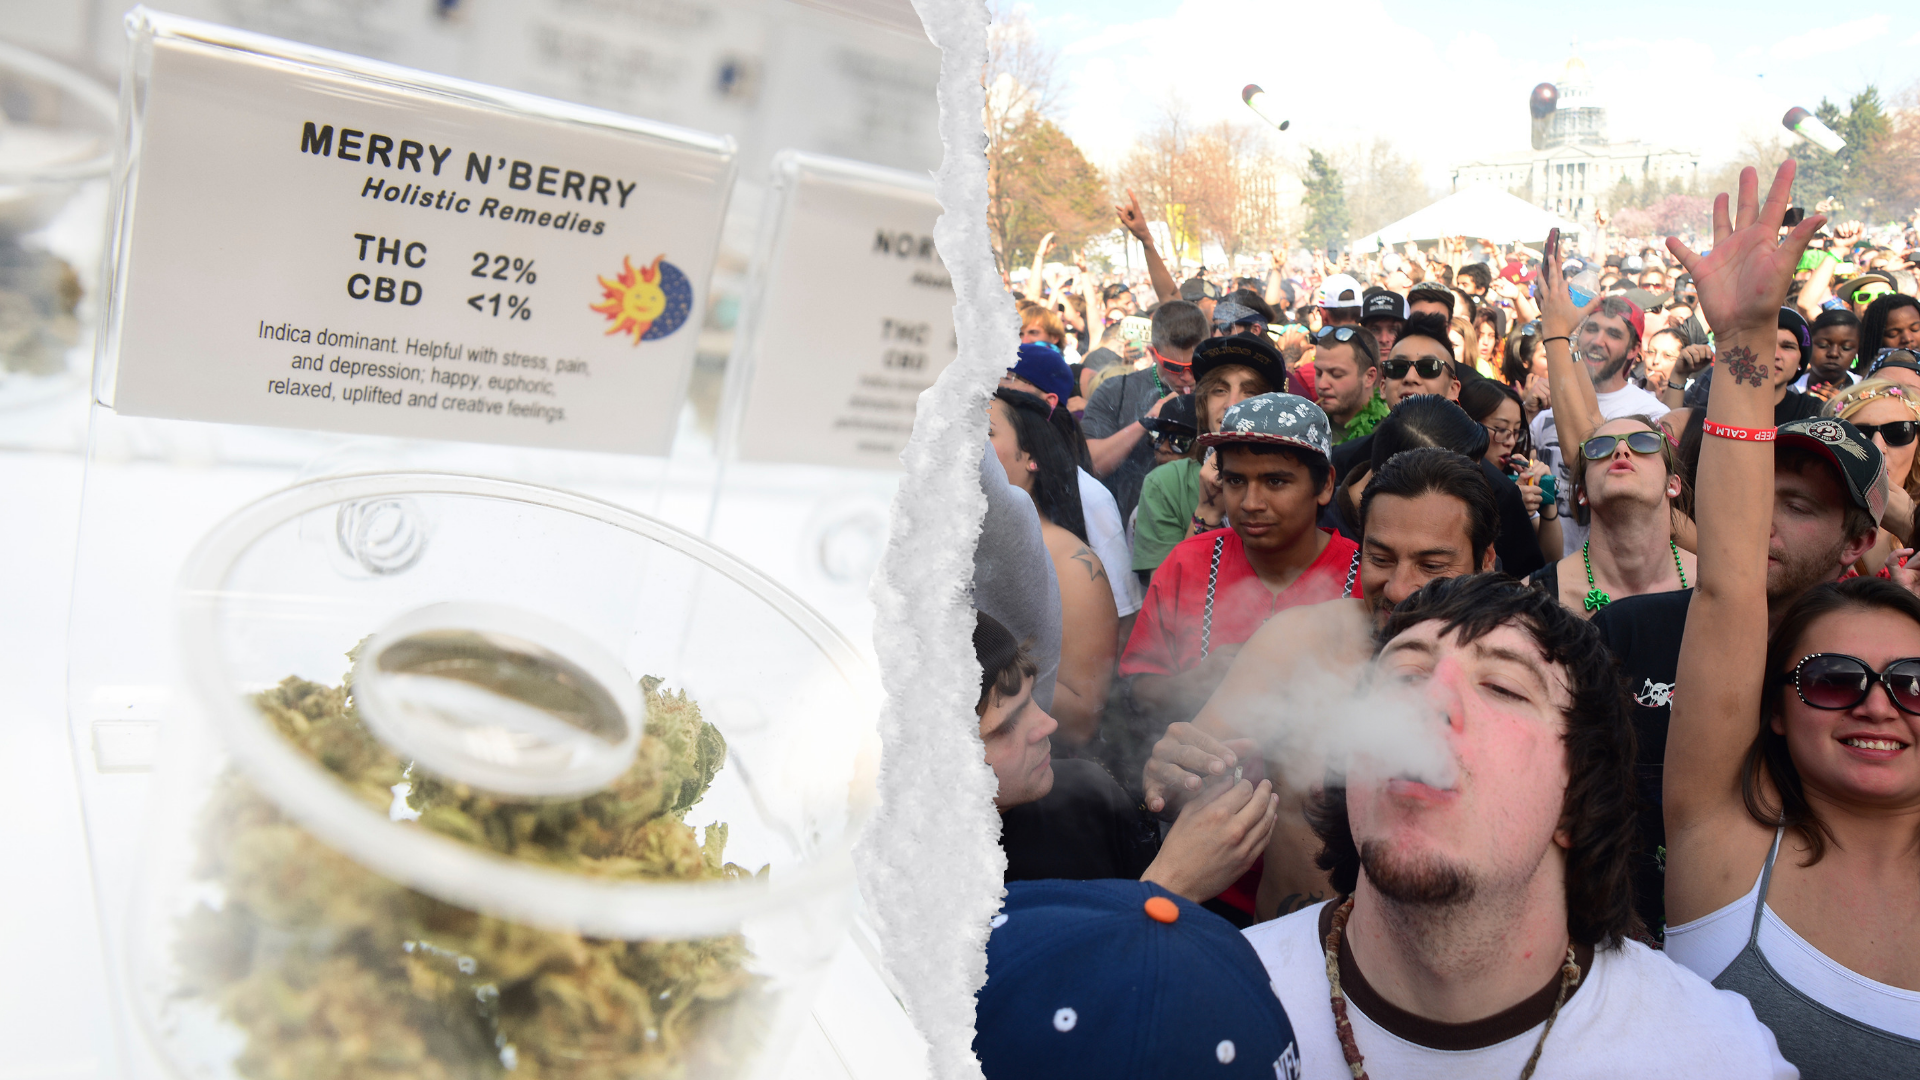 Is Weed for Fun or Medicine? The Government Might Finally Decide